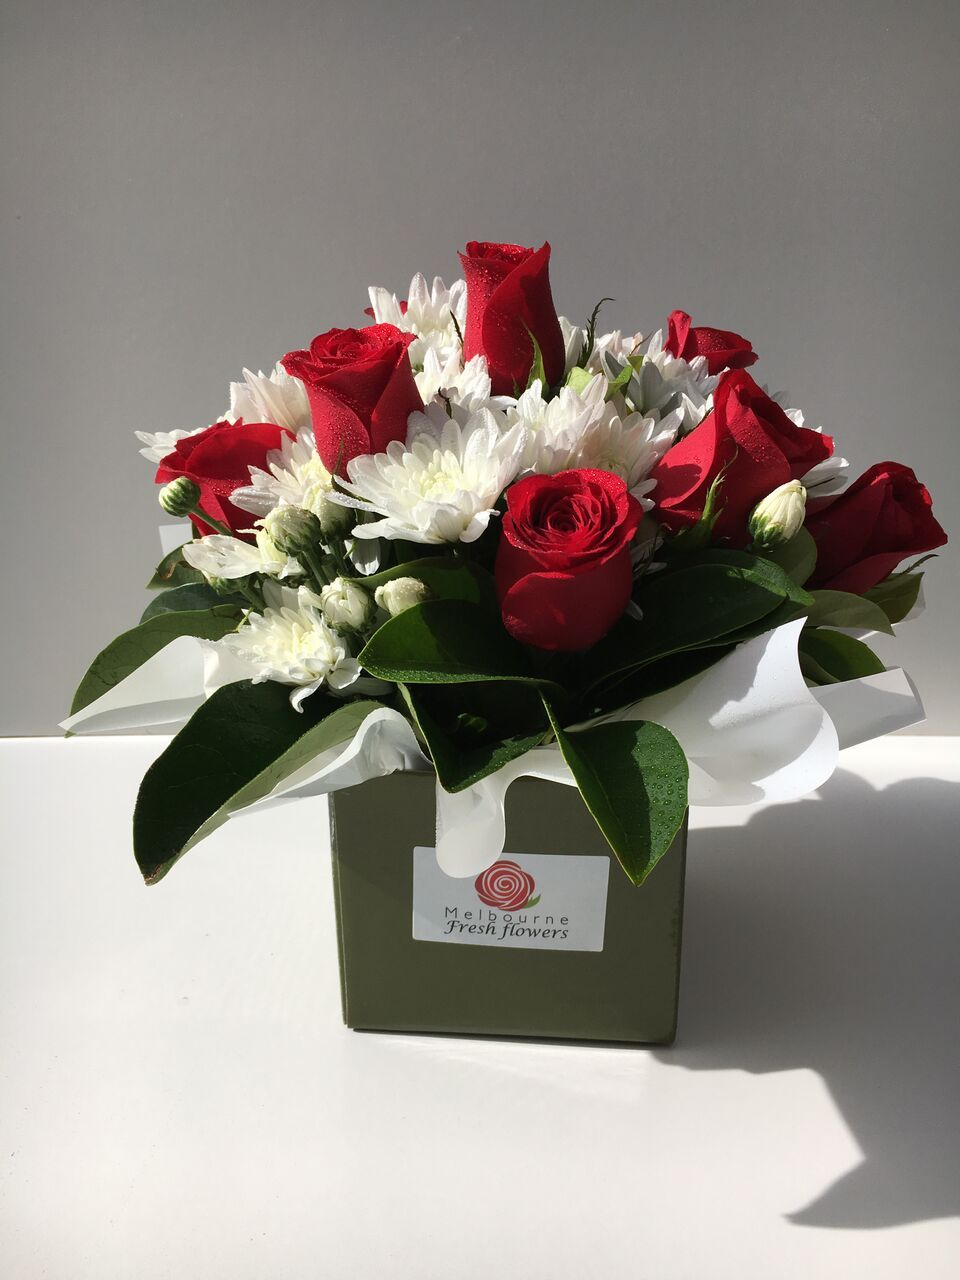 Make your dear ones feel loved with a bunch of red roses and white make your dear ones feel loved with a bunch of red roses and white chrysanthemum in a cute handle box arrangement from melbourne fresh flowers and see izmirmasajfo